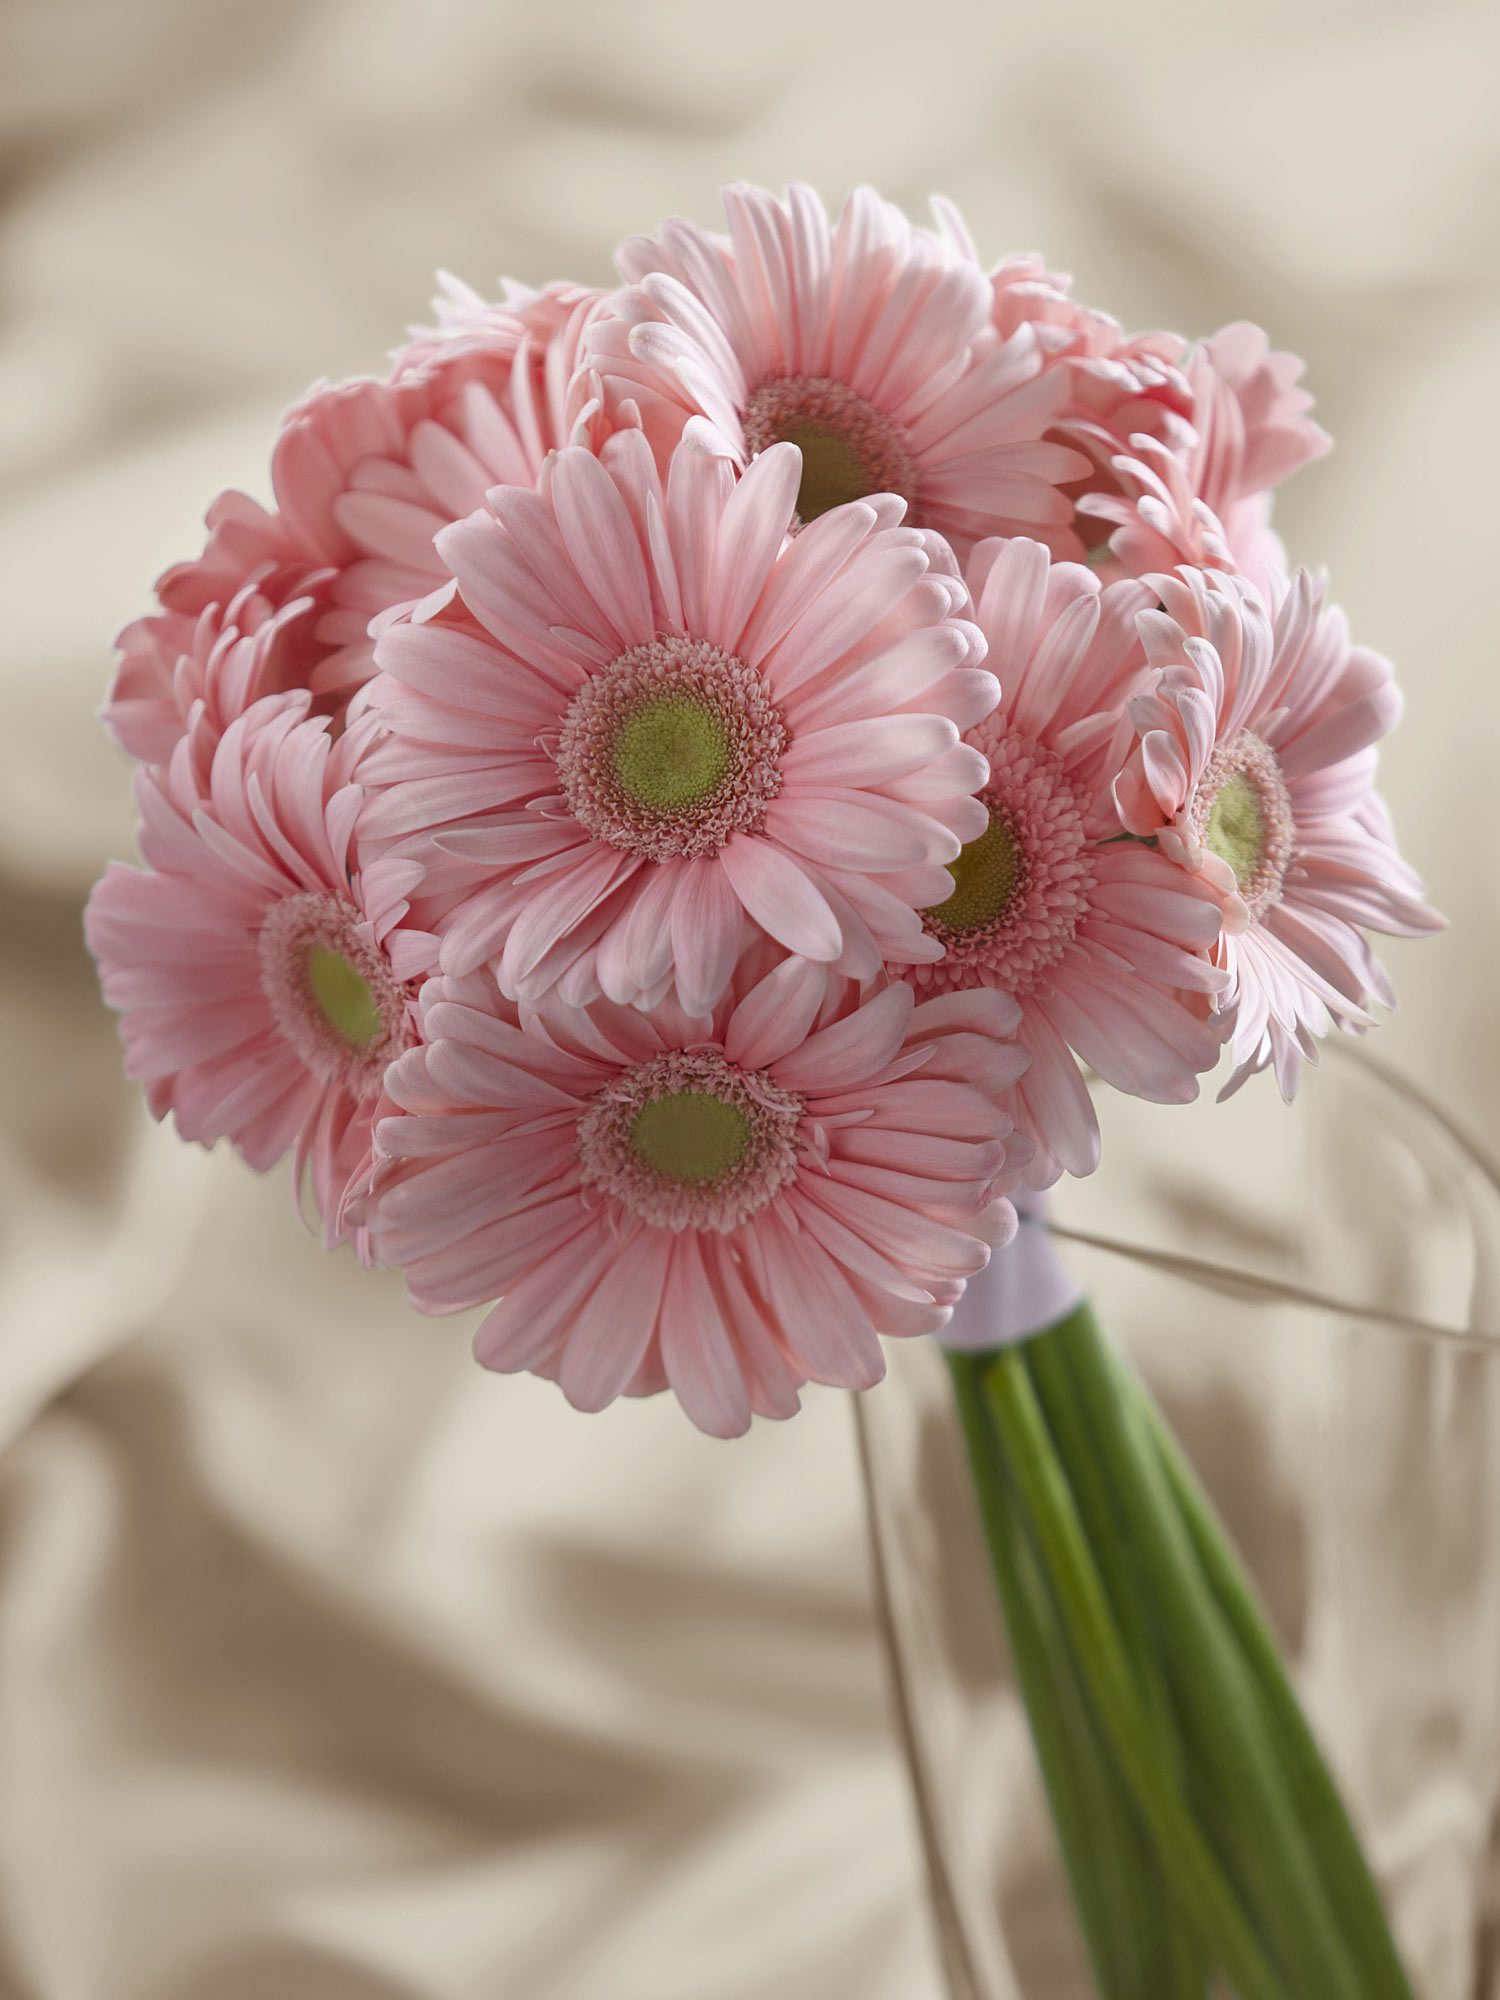 The FTDR Daisy DelightTM Bouquet Is An Expression Of Happiness And Sweet Simplicity To Add That Extra Touch Wedding Day Delightful Pink Gerbera